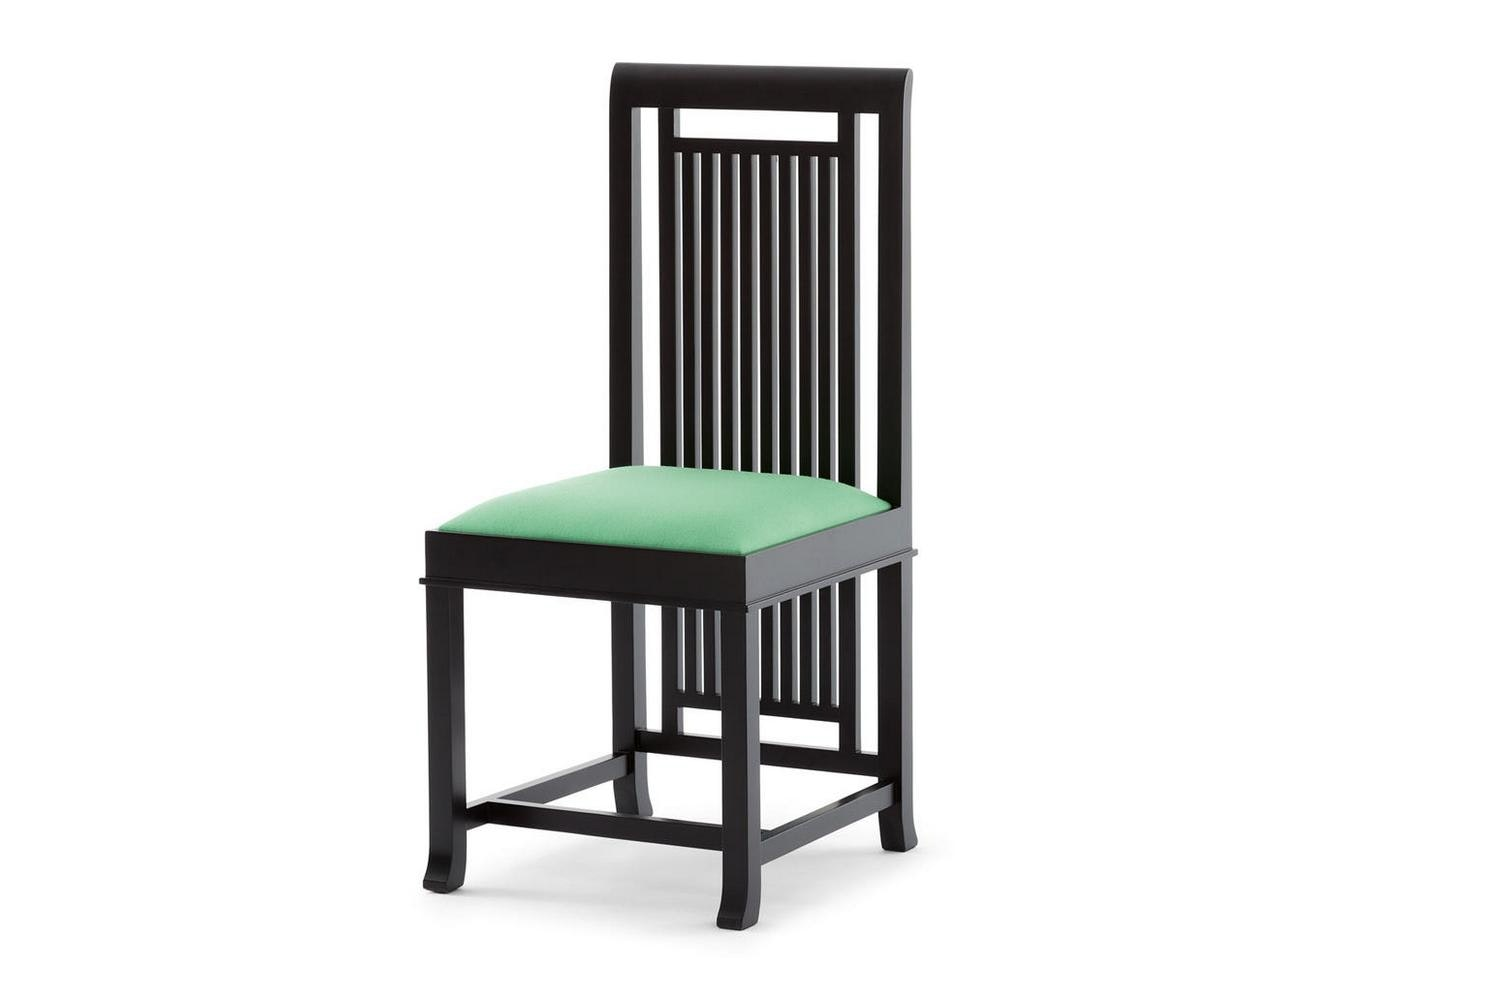 614 Coonley 2 Chair by Frank Lloyd Wright for Cassina